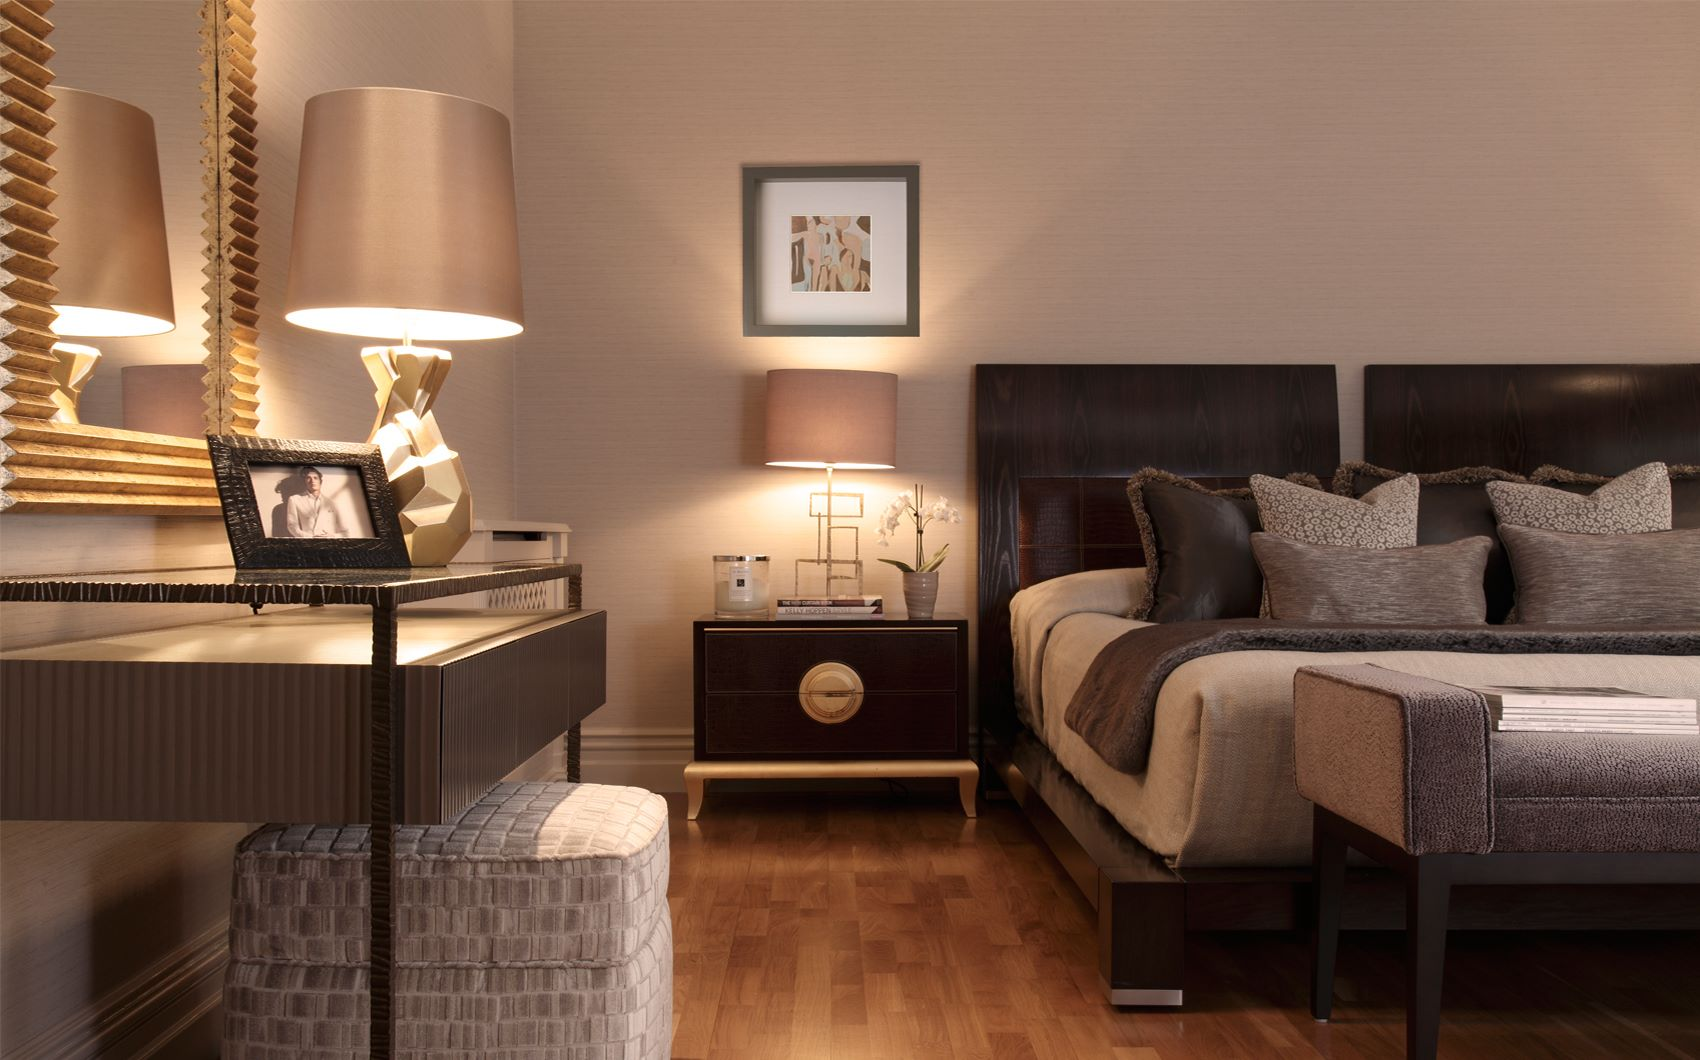 st georges hill - bedroom nightstand